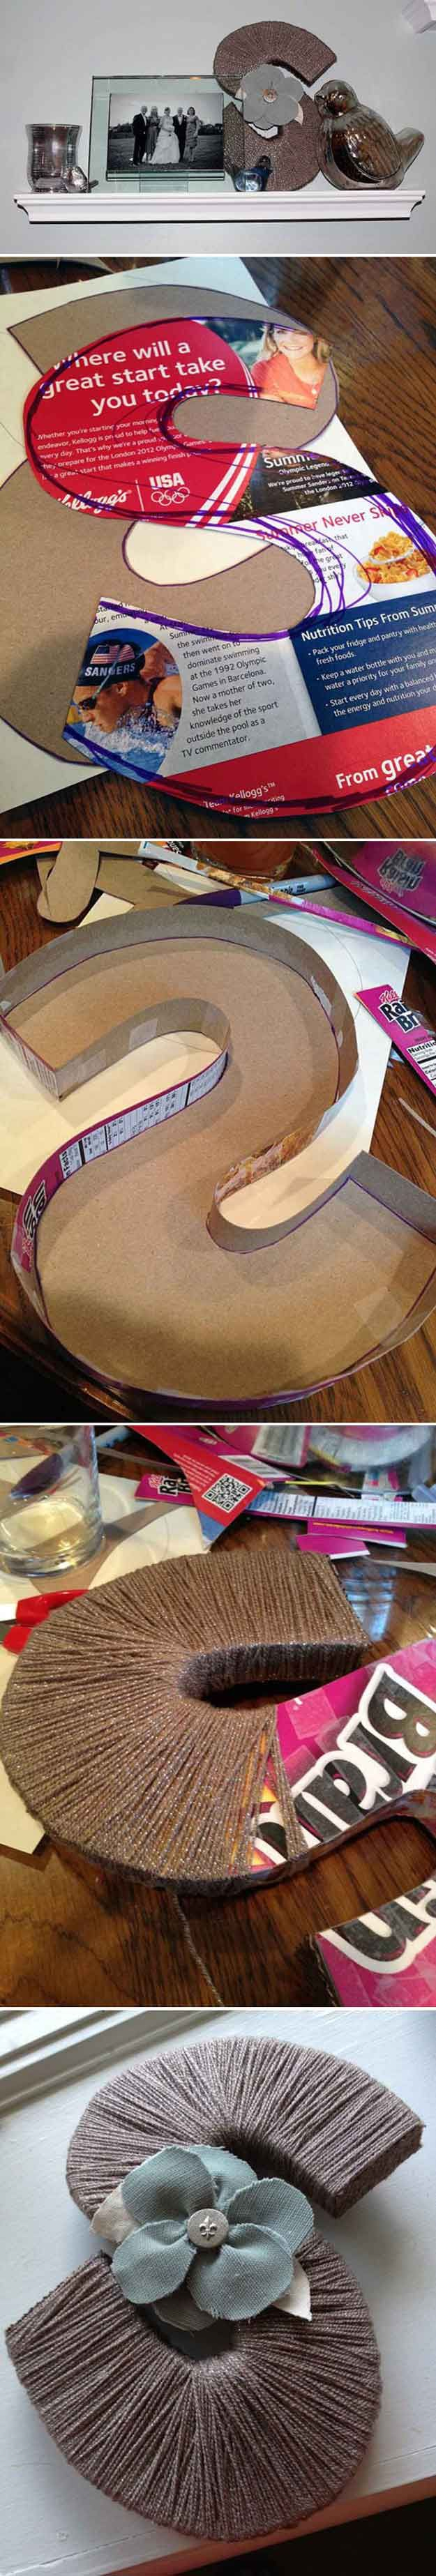 DIY Cereal Box Craft Art and Projects | http://diyready.com/28-things-you-can-make-from-cereal-boxes/